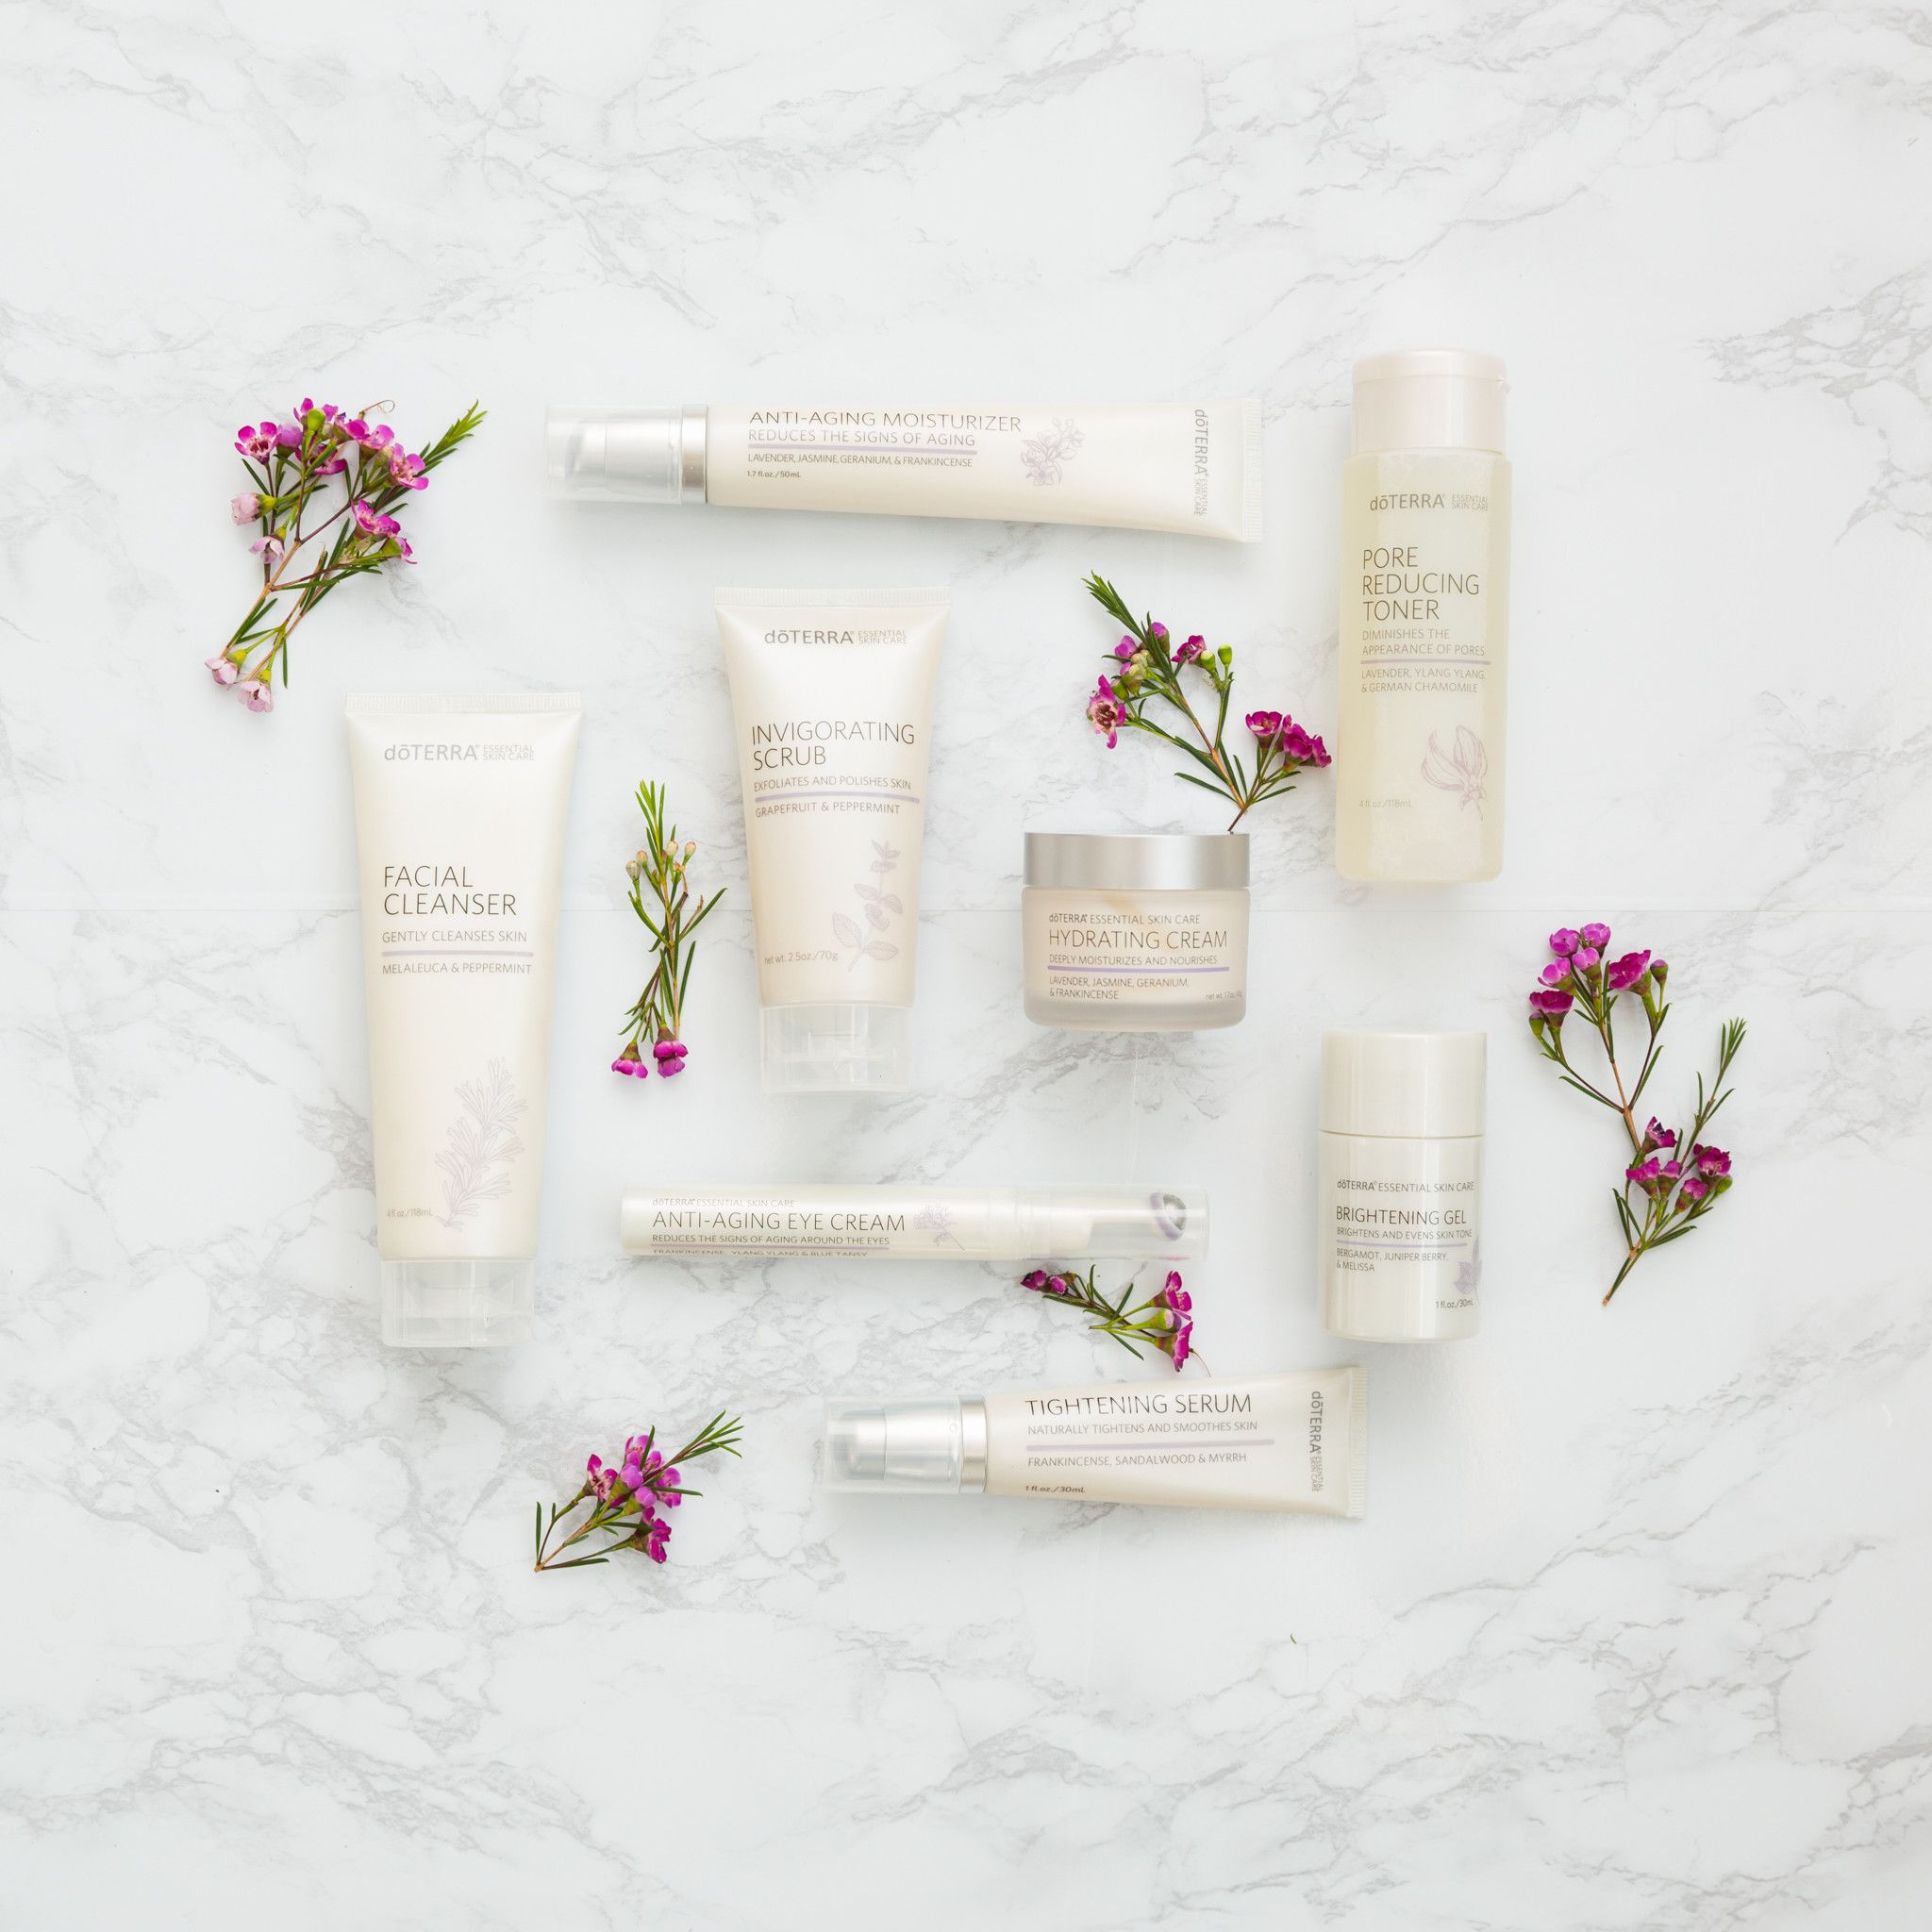 Essential Skin Care Enjoy The New Essential Skin Care Line In One Easy Kit Doterra Essential Ski In 2020 Skin Care Kit Skin Care Essentials Skin Care Products Design